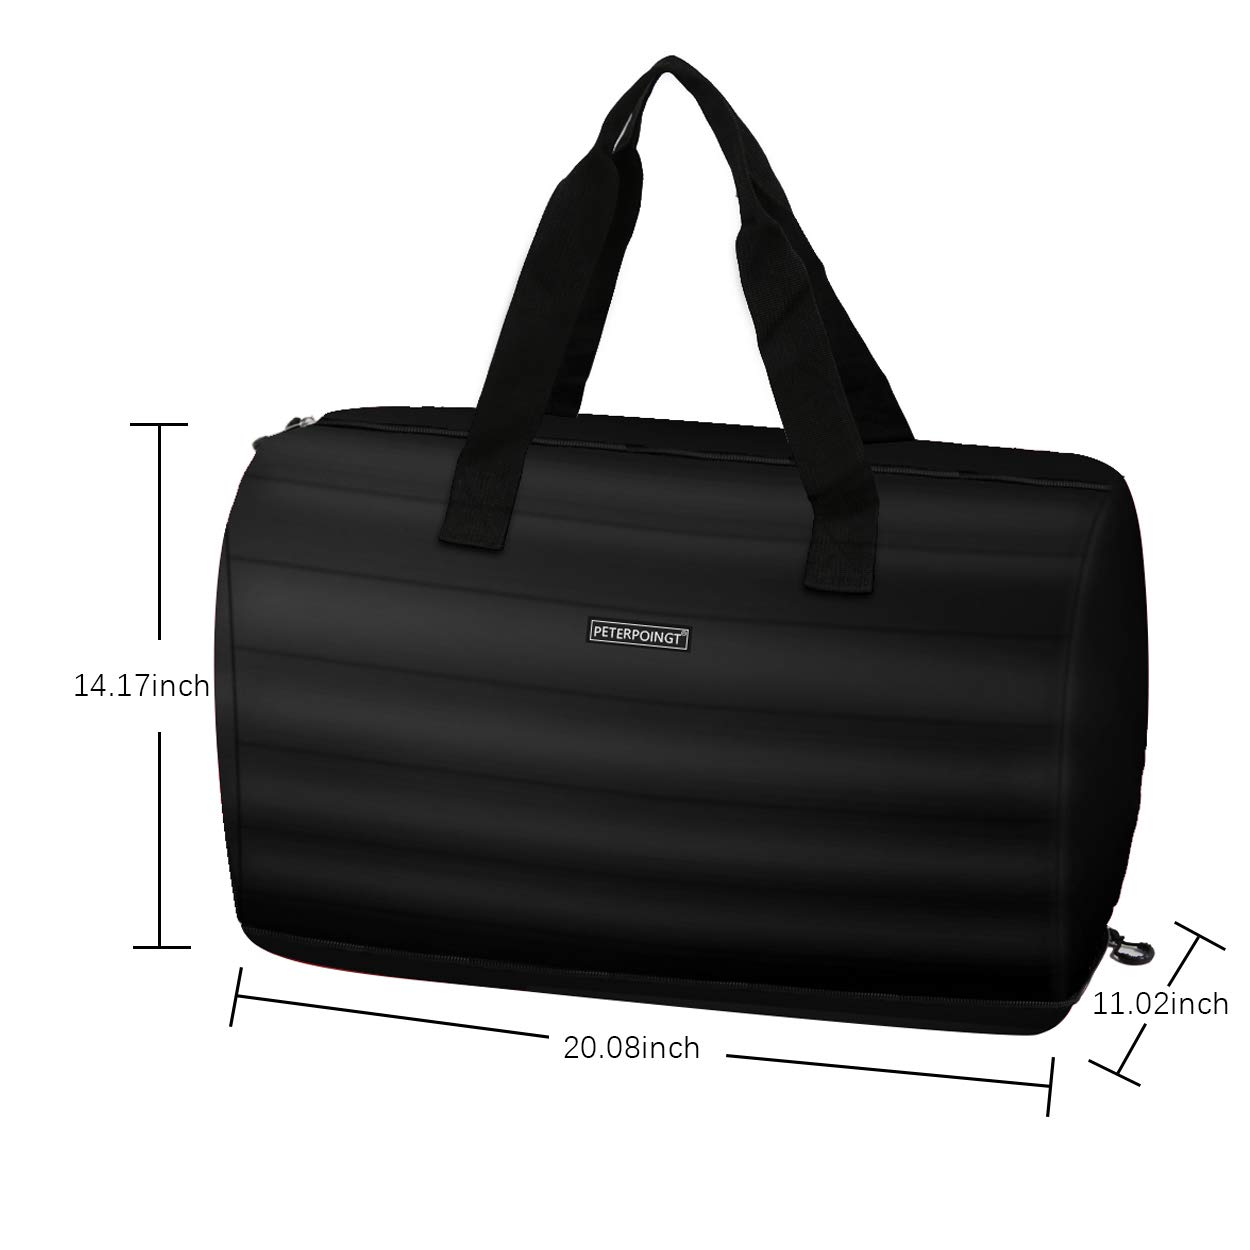 PETERPOINT Bag Travel Bag Handle Travel Pillow Sport Gym Portable Men Women for Foldable Duffle Lightweight Luggage Large 5 Color Black